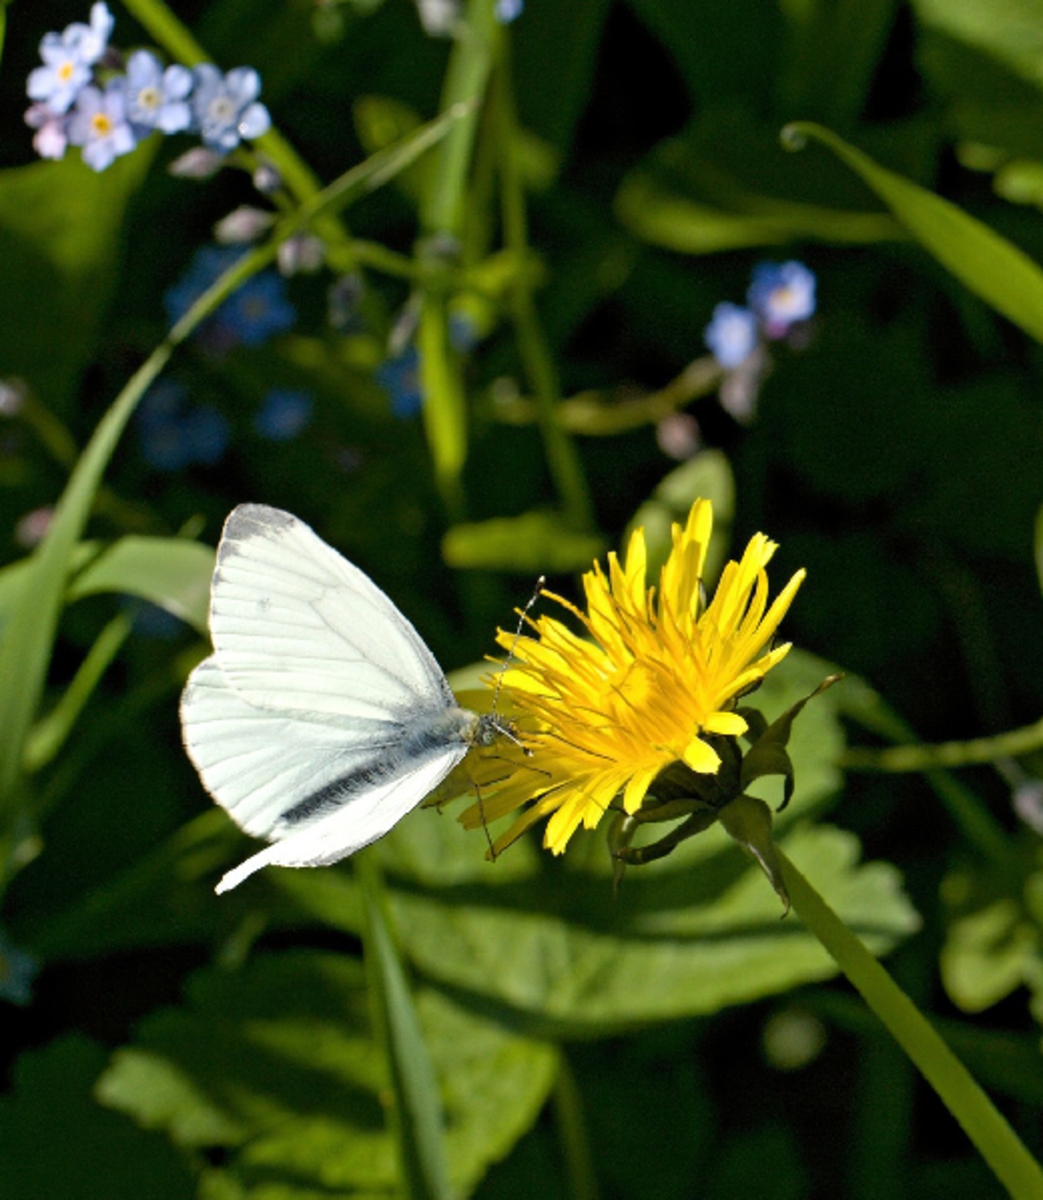 Pieridae White Butterfly and Dandelion